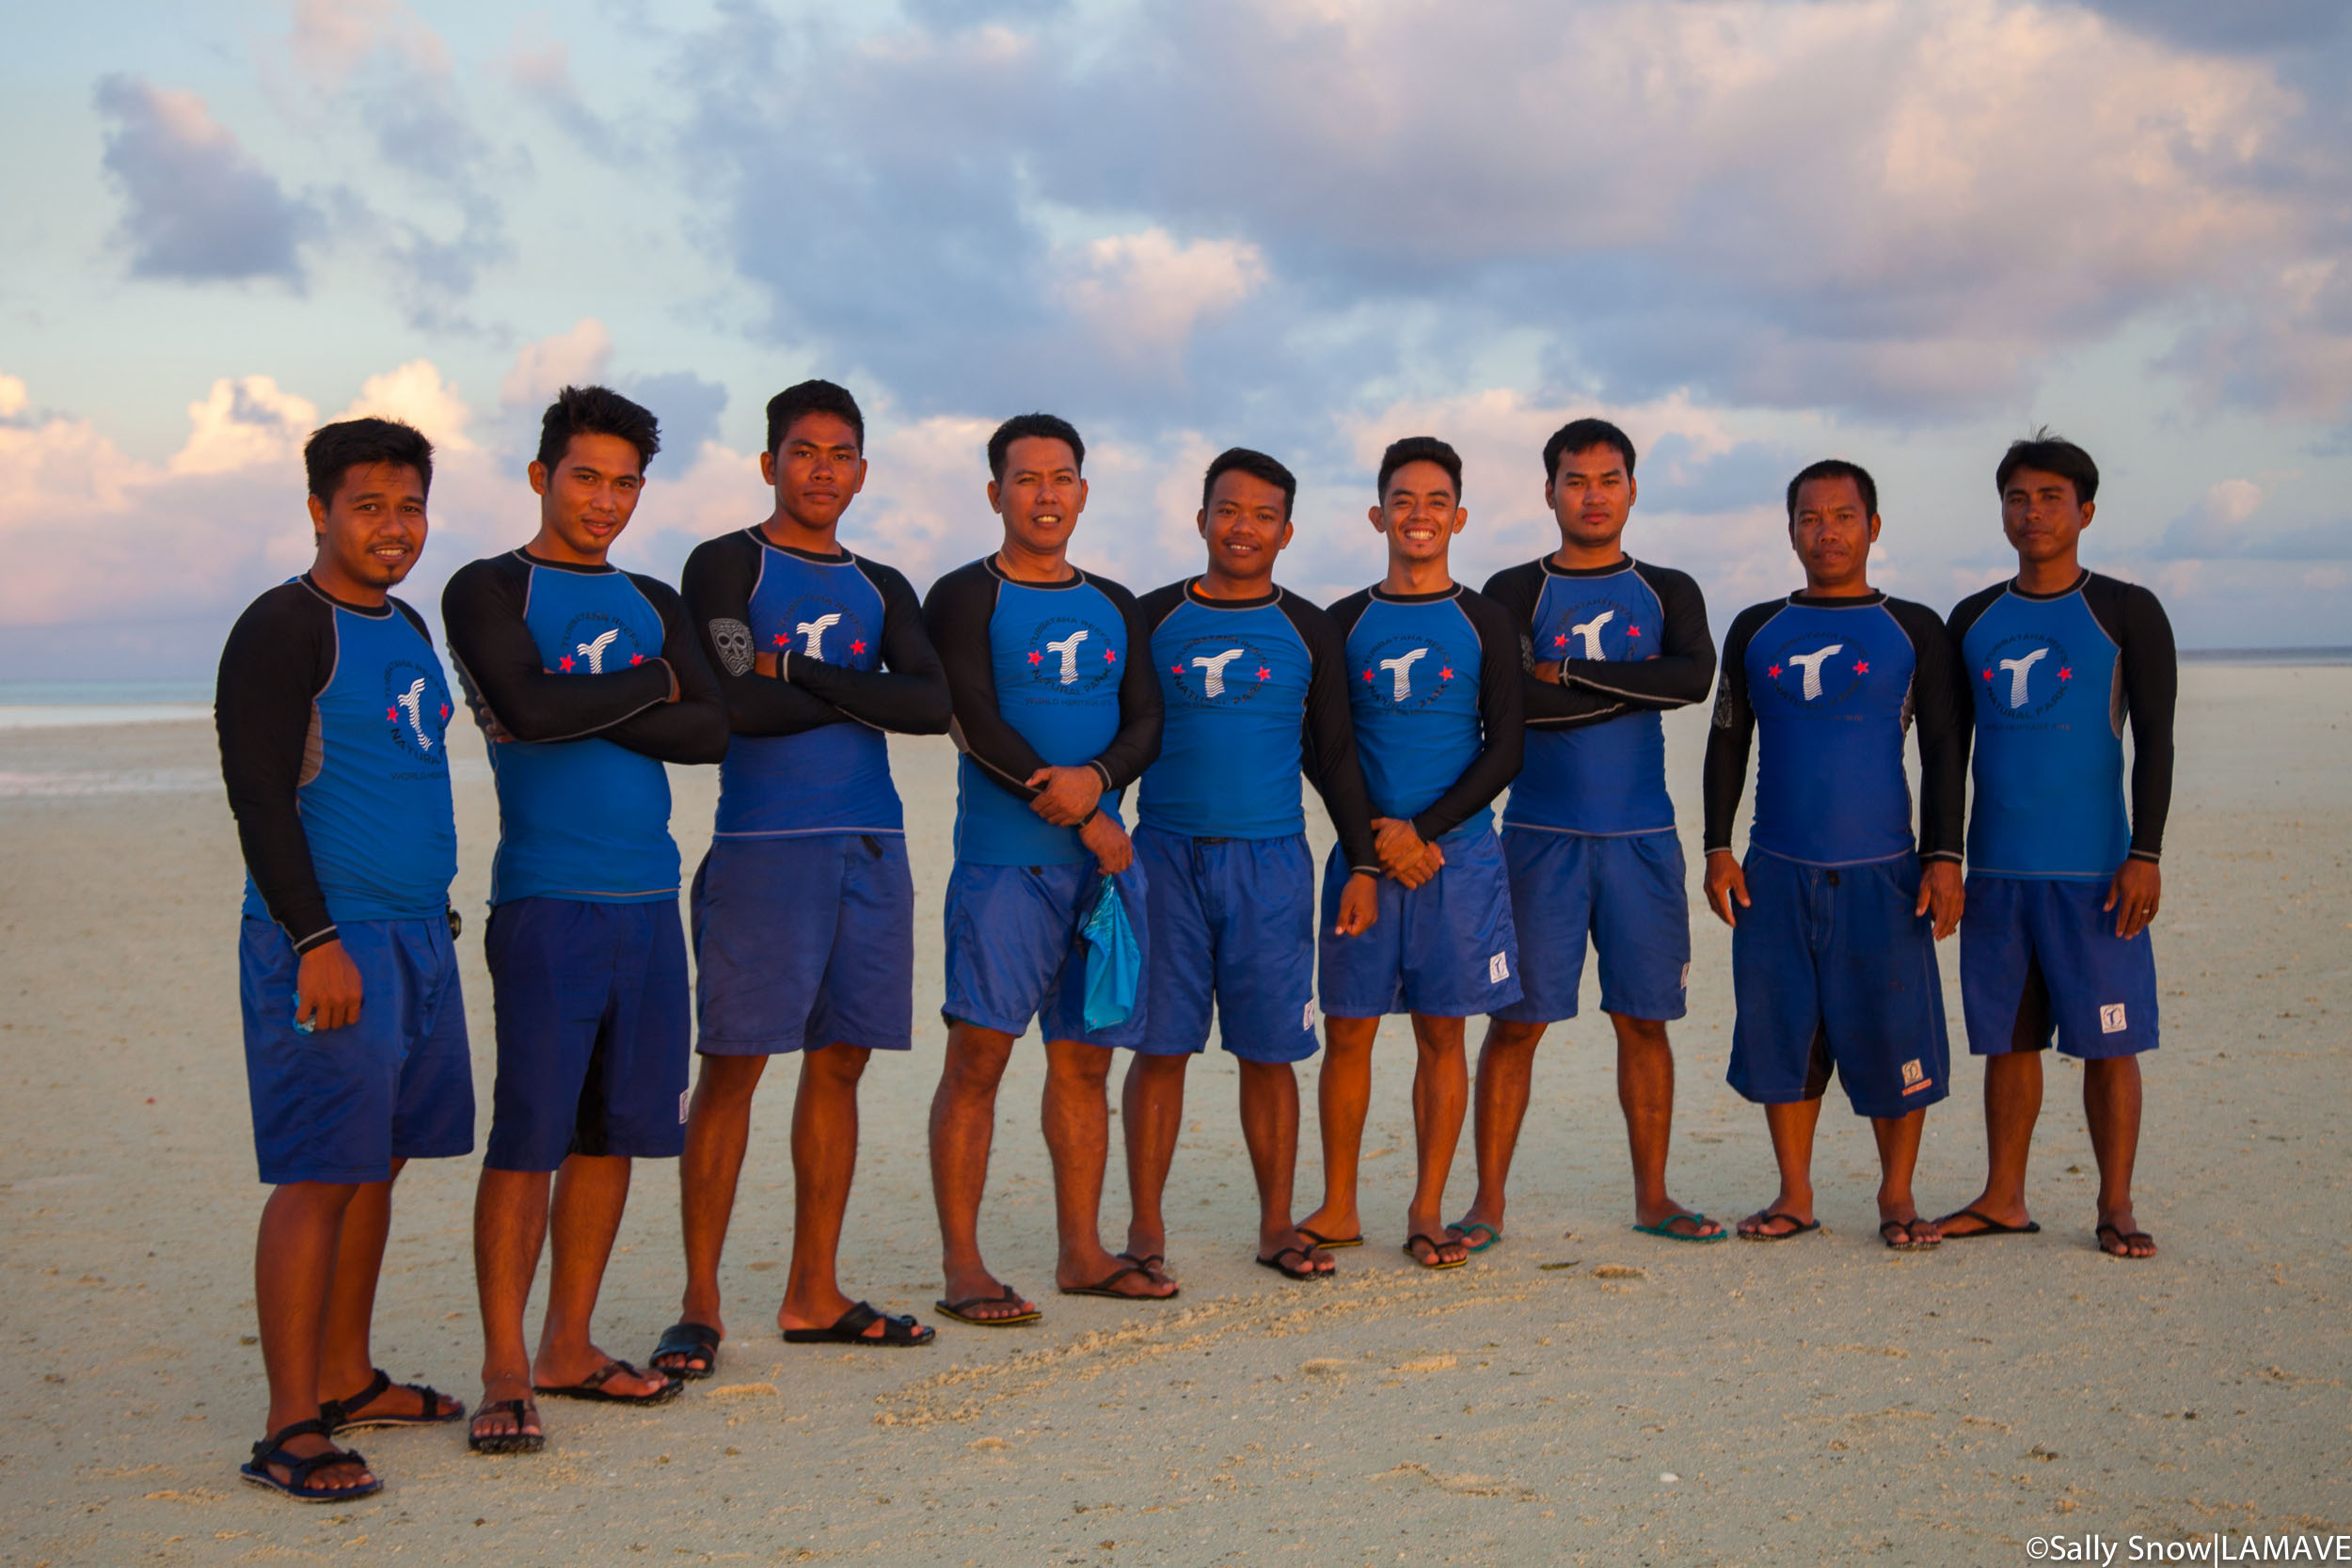 Photo 6. The rangers of Tubbataha Reefs. The rangers who protect the park are composed of members of the Tubbataha Management Office, Philippine Navy, Philippine Coastguard and members of the Local Government Unit of Cagayancillo.